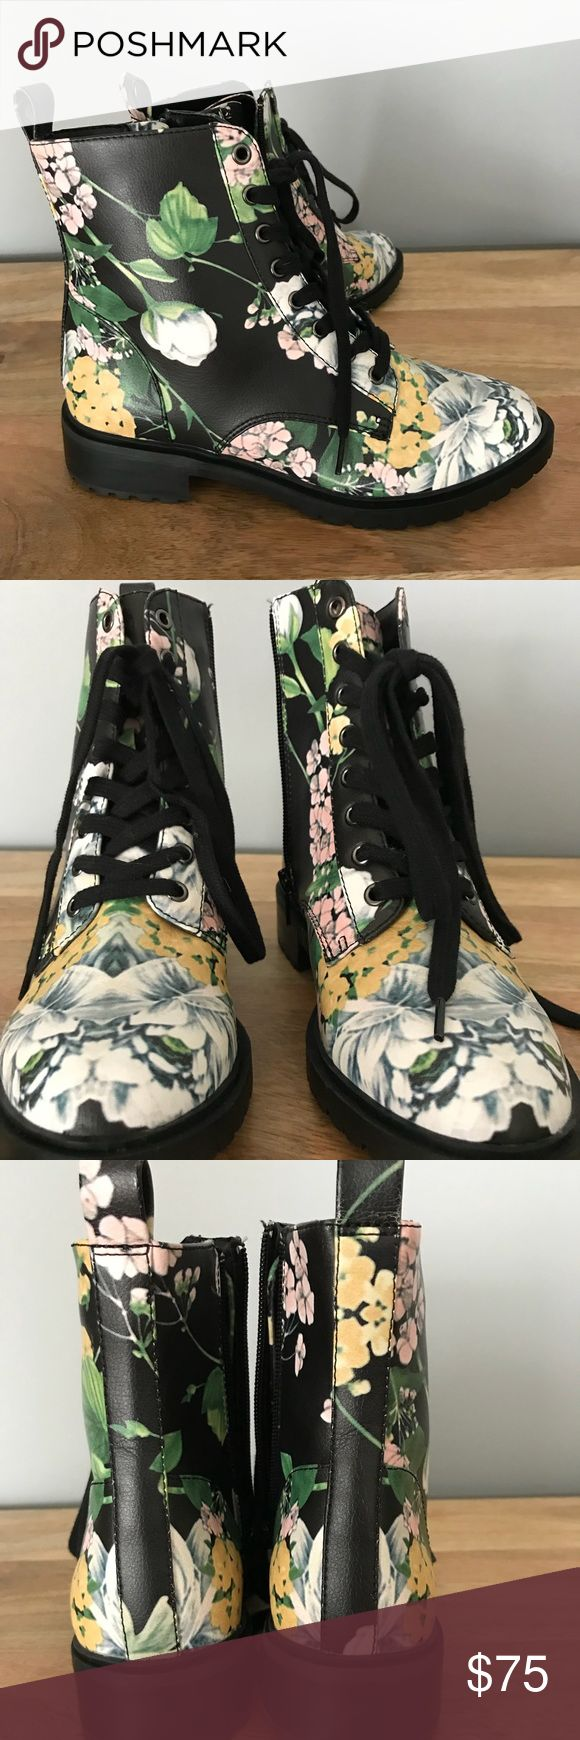 Steve Madden Floral Combat Boot, Size 6.5 Brand new, never worn Steve Madden floral combat boot. I bought the wrong size when on vacation or else I would keep them. Very cute! Steve Madden Shoes Combat & Moto Boots